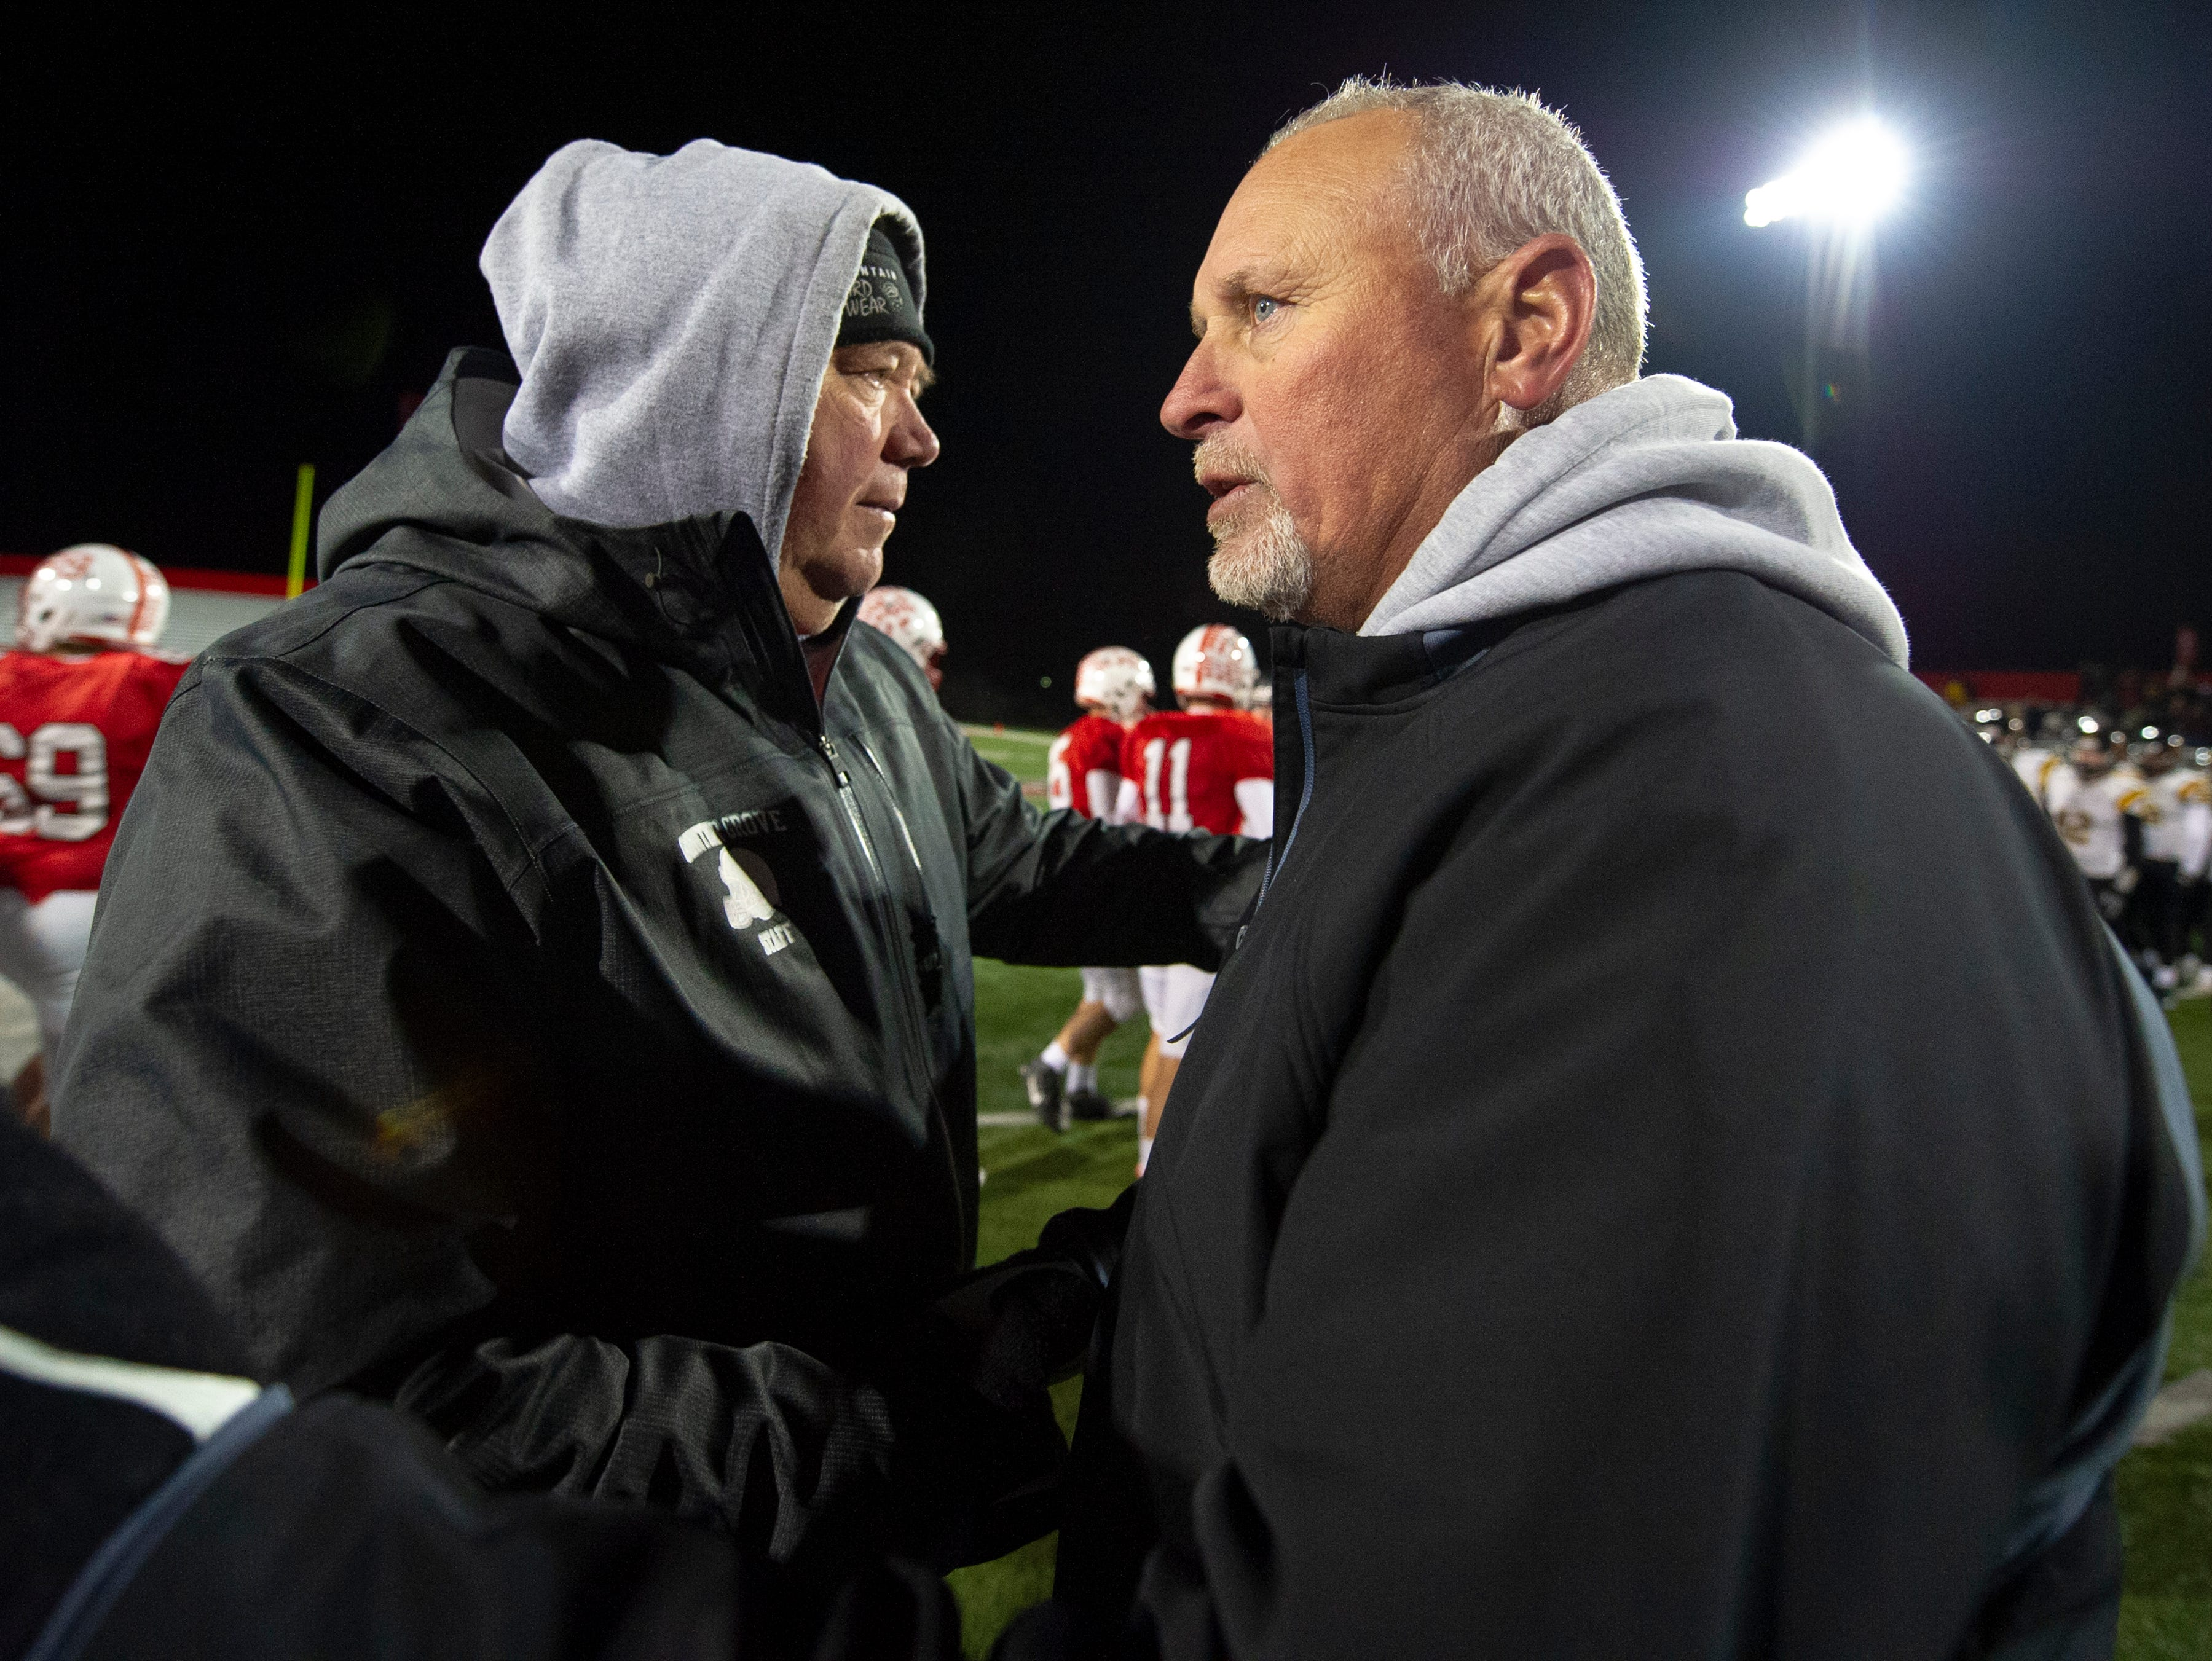 Center Grove High School head coach Eric Moore, left, and Avon High School head coach Mark Bless meet on the field after the game. Center Grove High School hosted Avon High School in an IHSAA Class 6A Regional Championship varsity football game, Friday, Nov. 9, 2018. Center Grove won 17-0 to advance to semi-state.